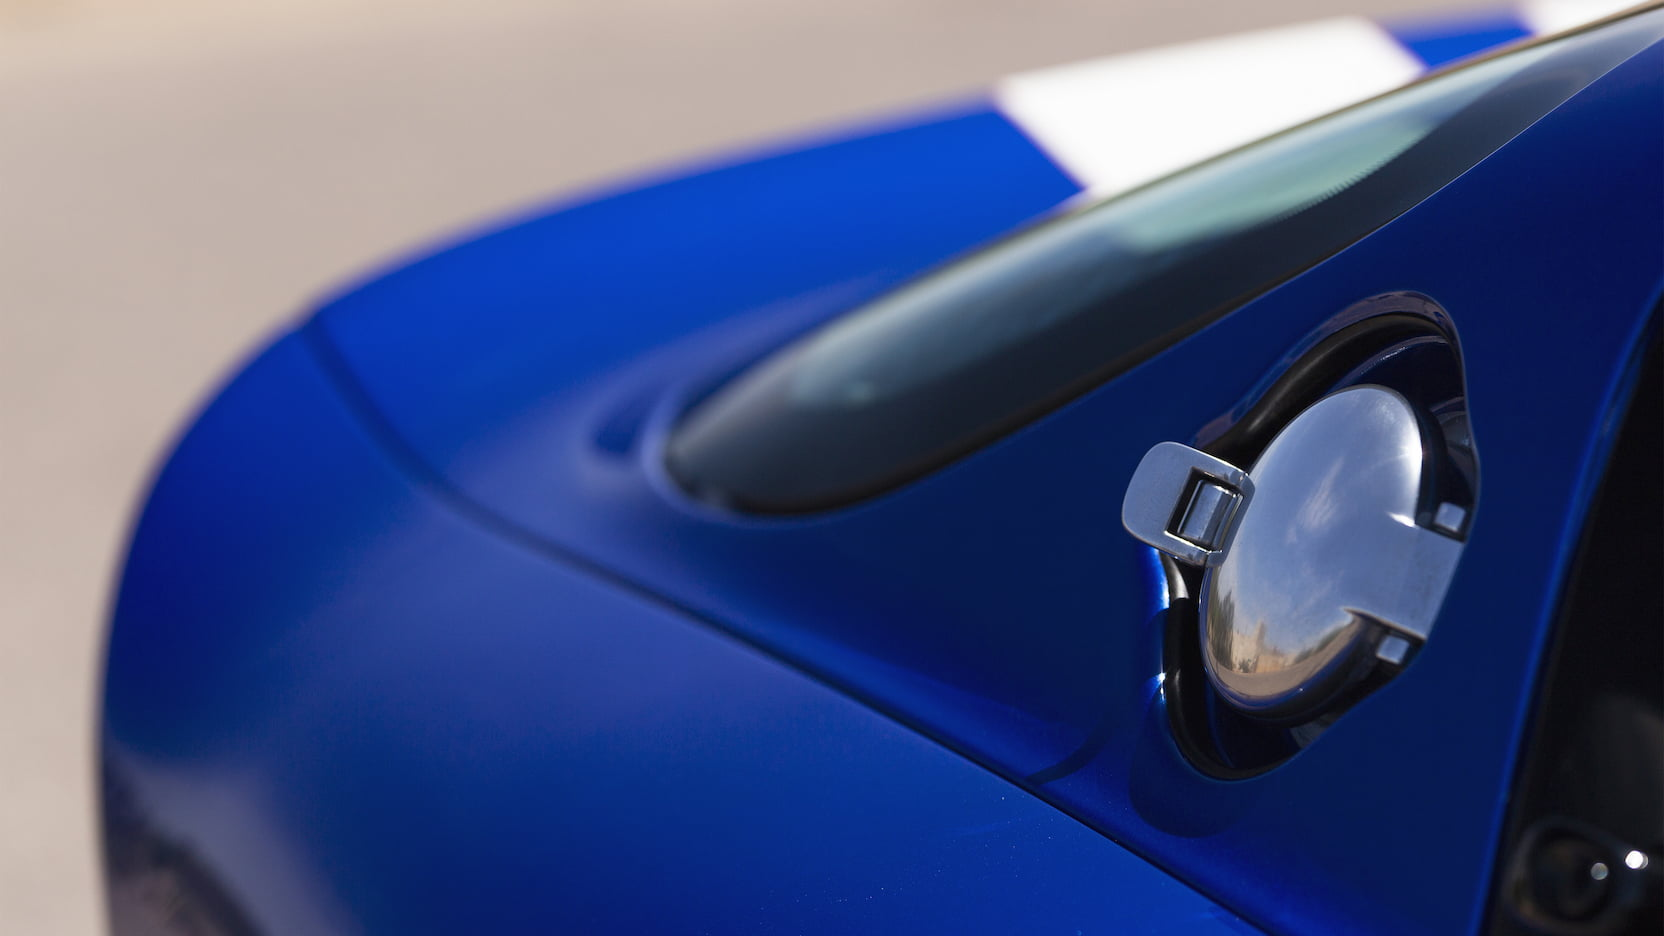 1996 Dodge Viper GTS gas cap